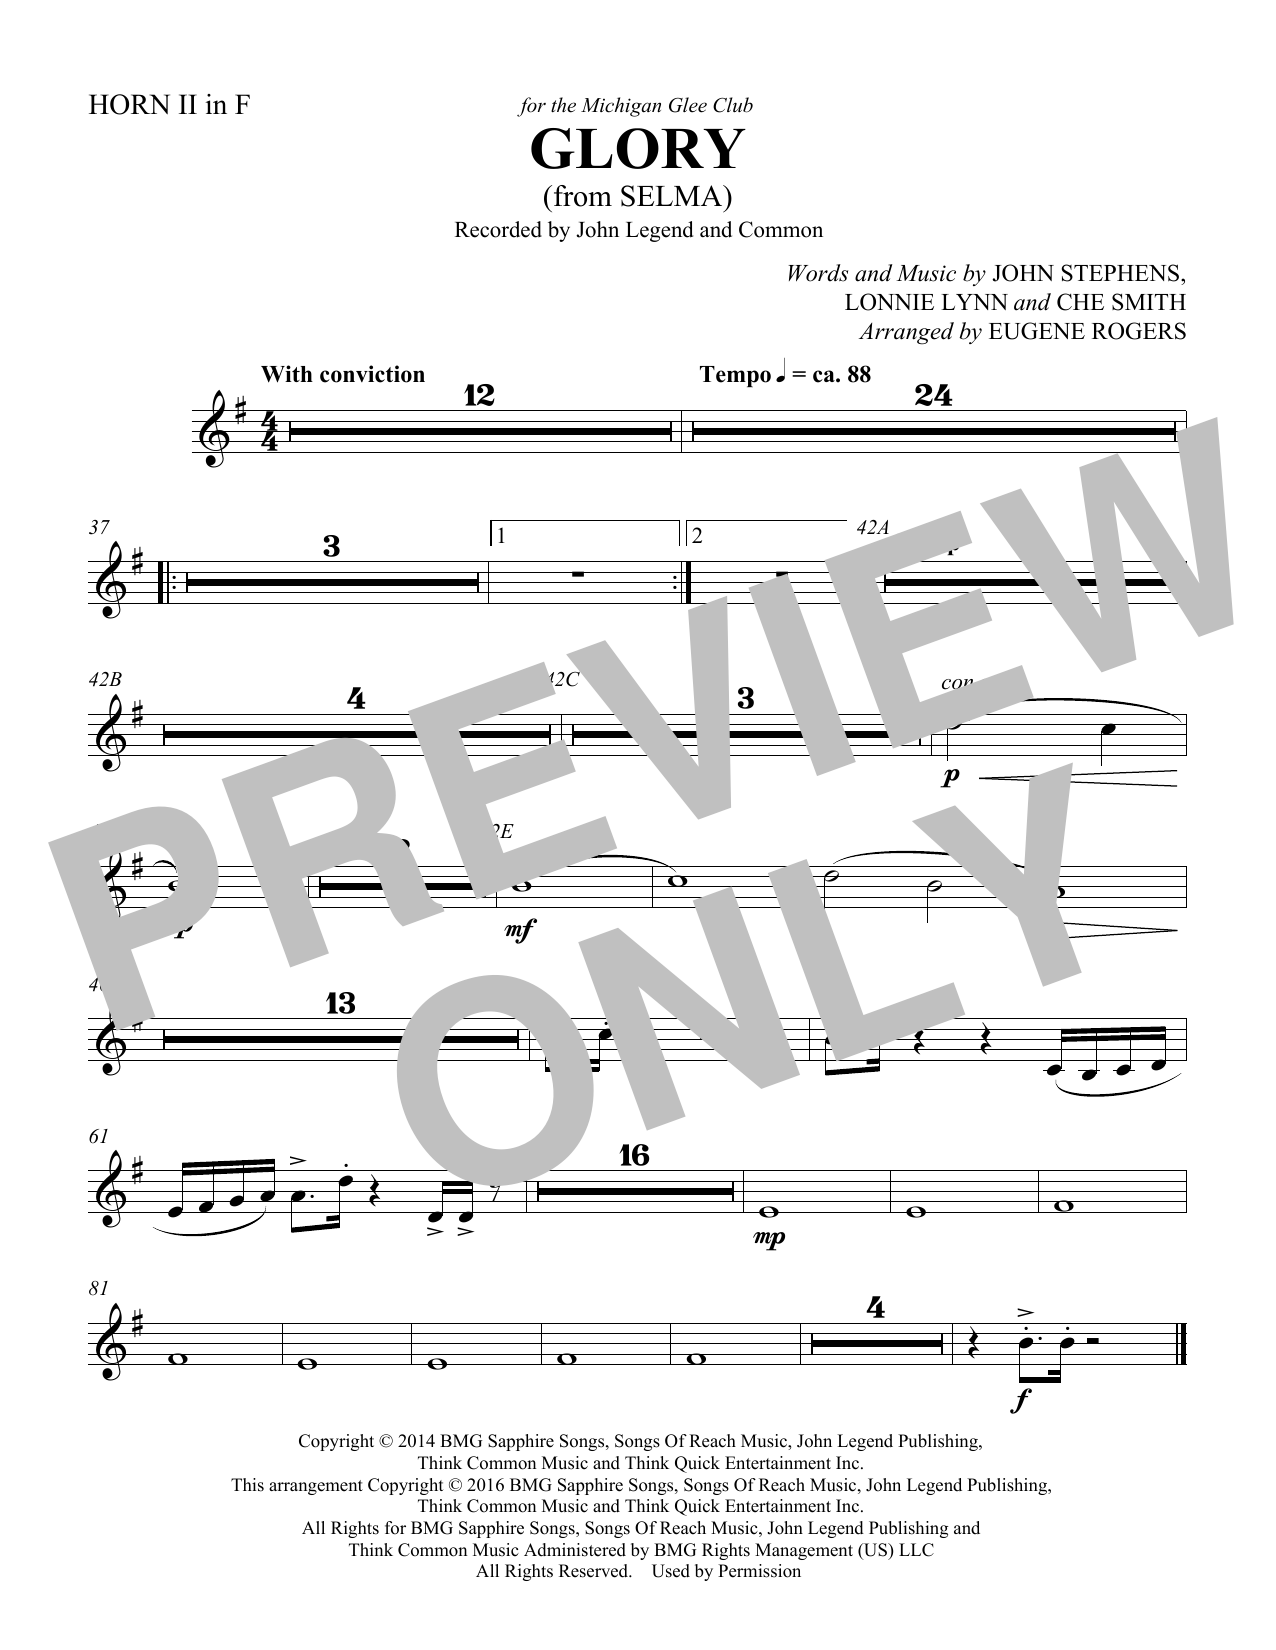 Common & John Legend Glory (from Selma) (arr. Eugene Rogers) - Horn 2 in F sheet music preview music notes and score for Choir Instrumental Pak including 1 page(s)